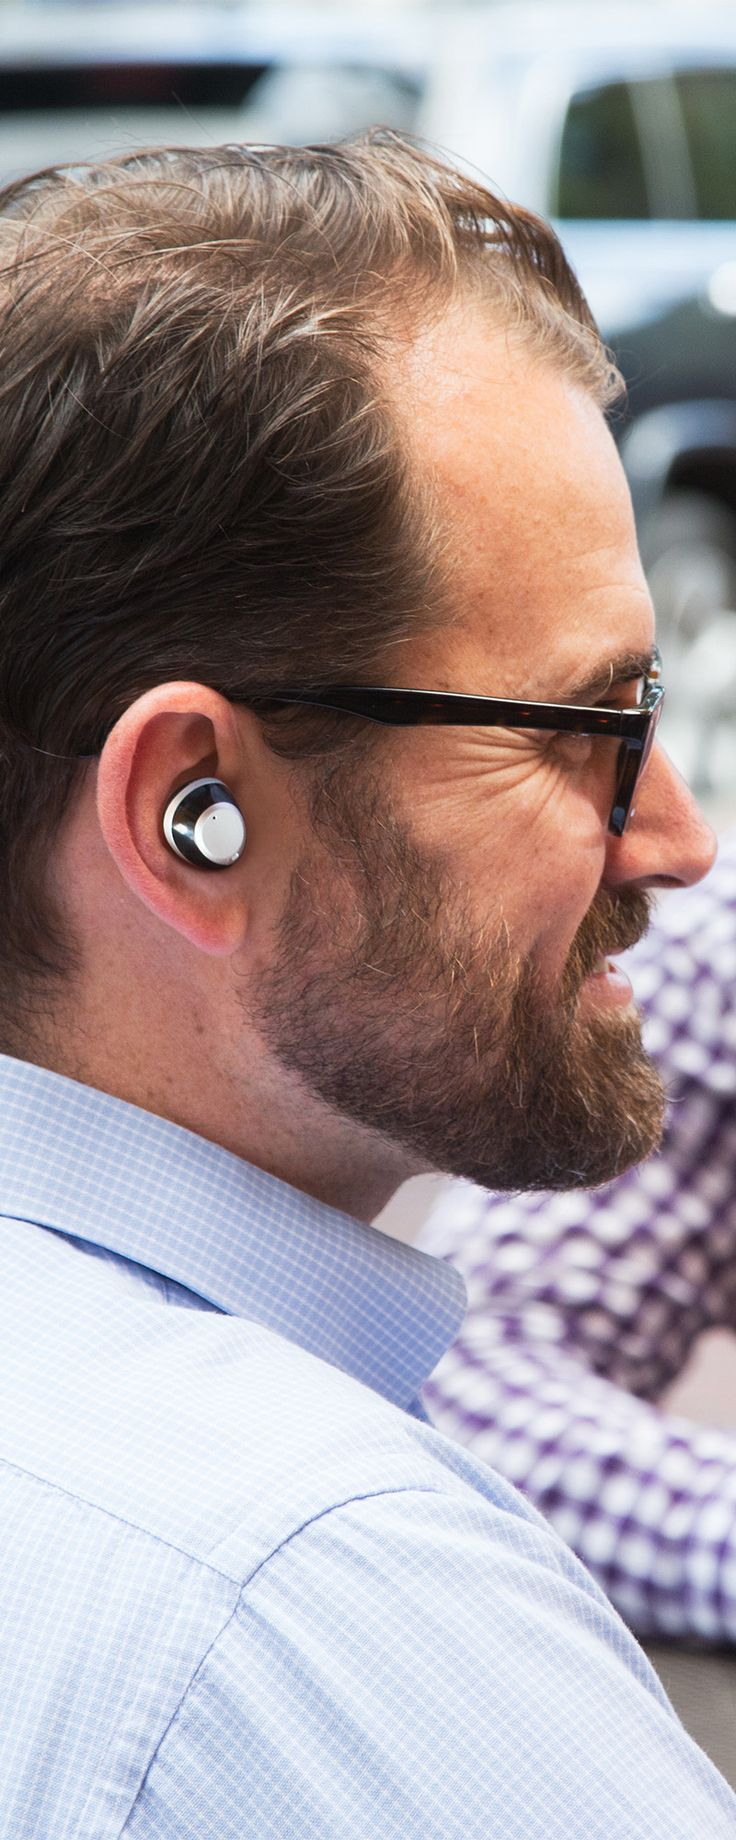 These Bluetooth earbuds are app-enabled to create a custom sound experience tailored just for you. They enhance your natural hearing by amplifying or minimizing sounds to isolate just what you want to listen in on—like a conversation in a noisy restaurant. And the low profile design seamlessly lends a hand (or, more accurately, an ear) without drawing attention.